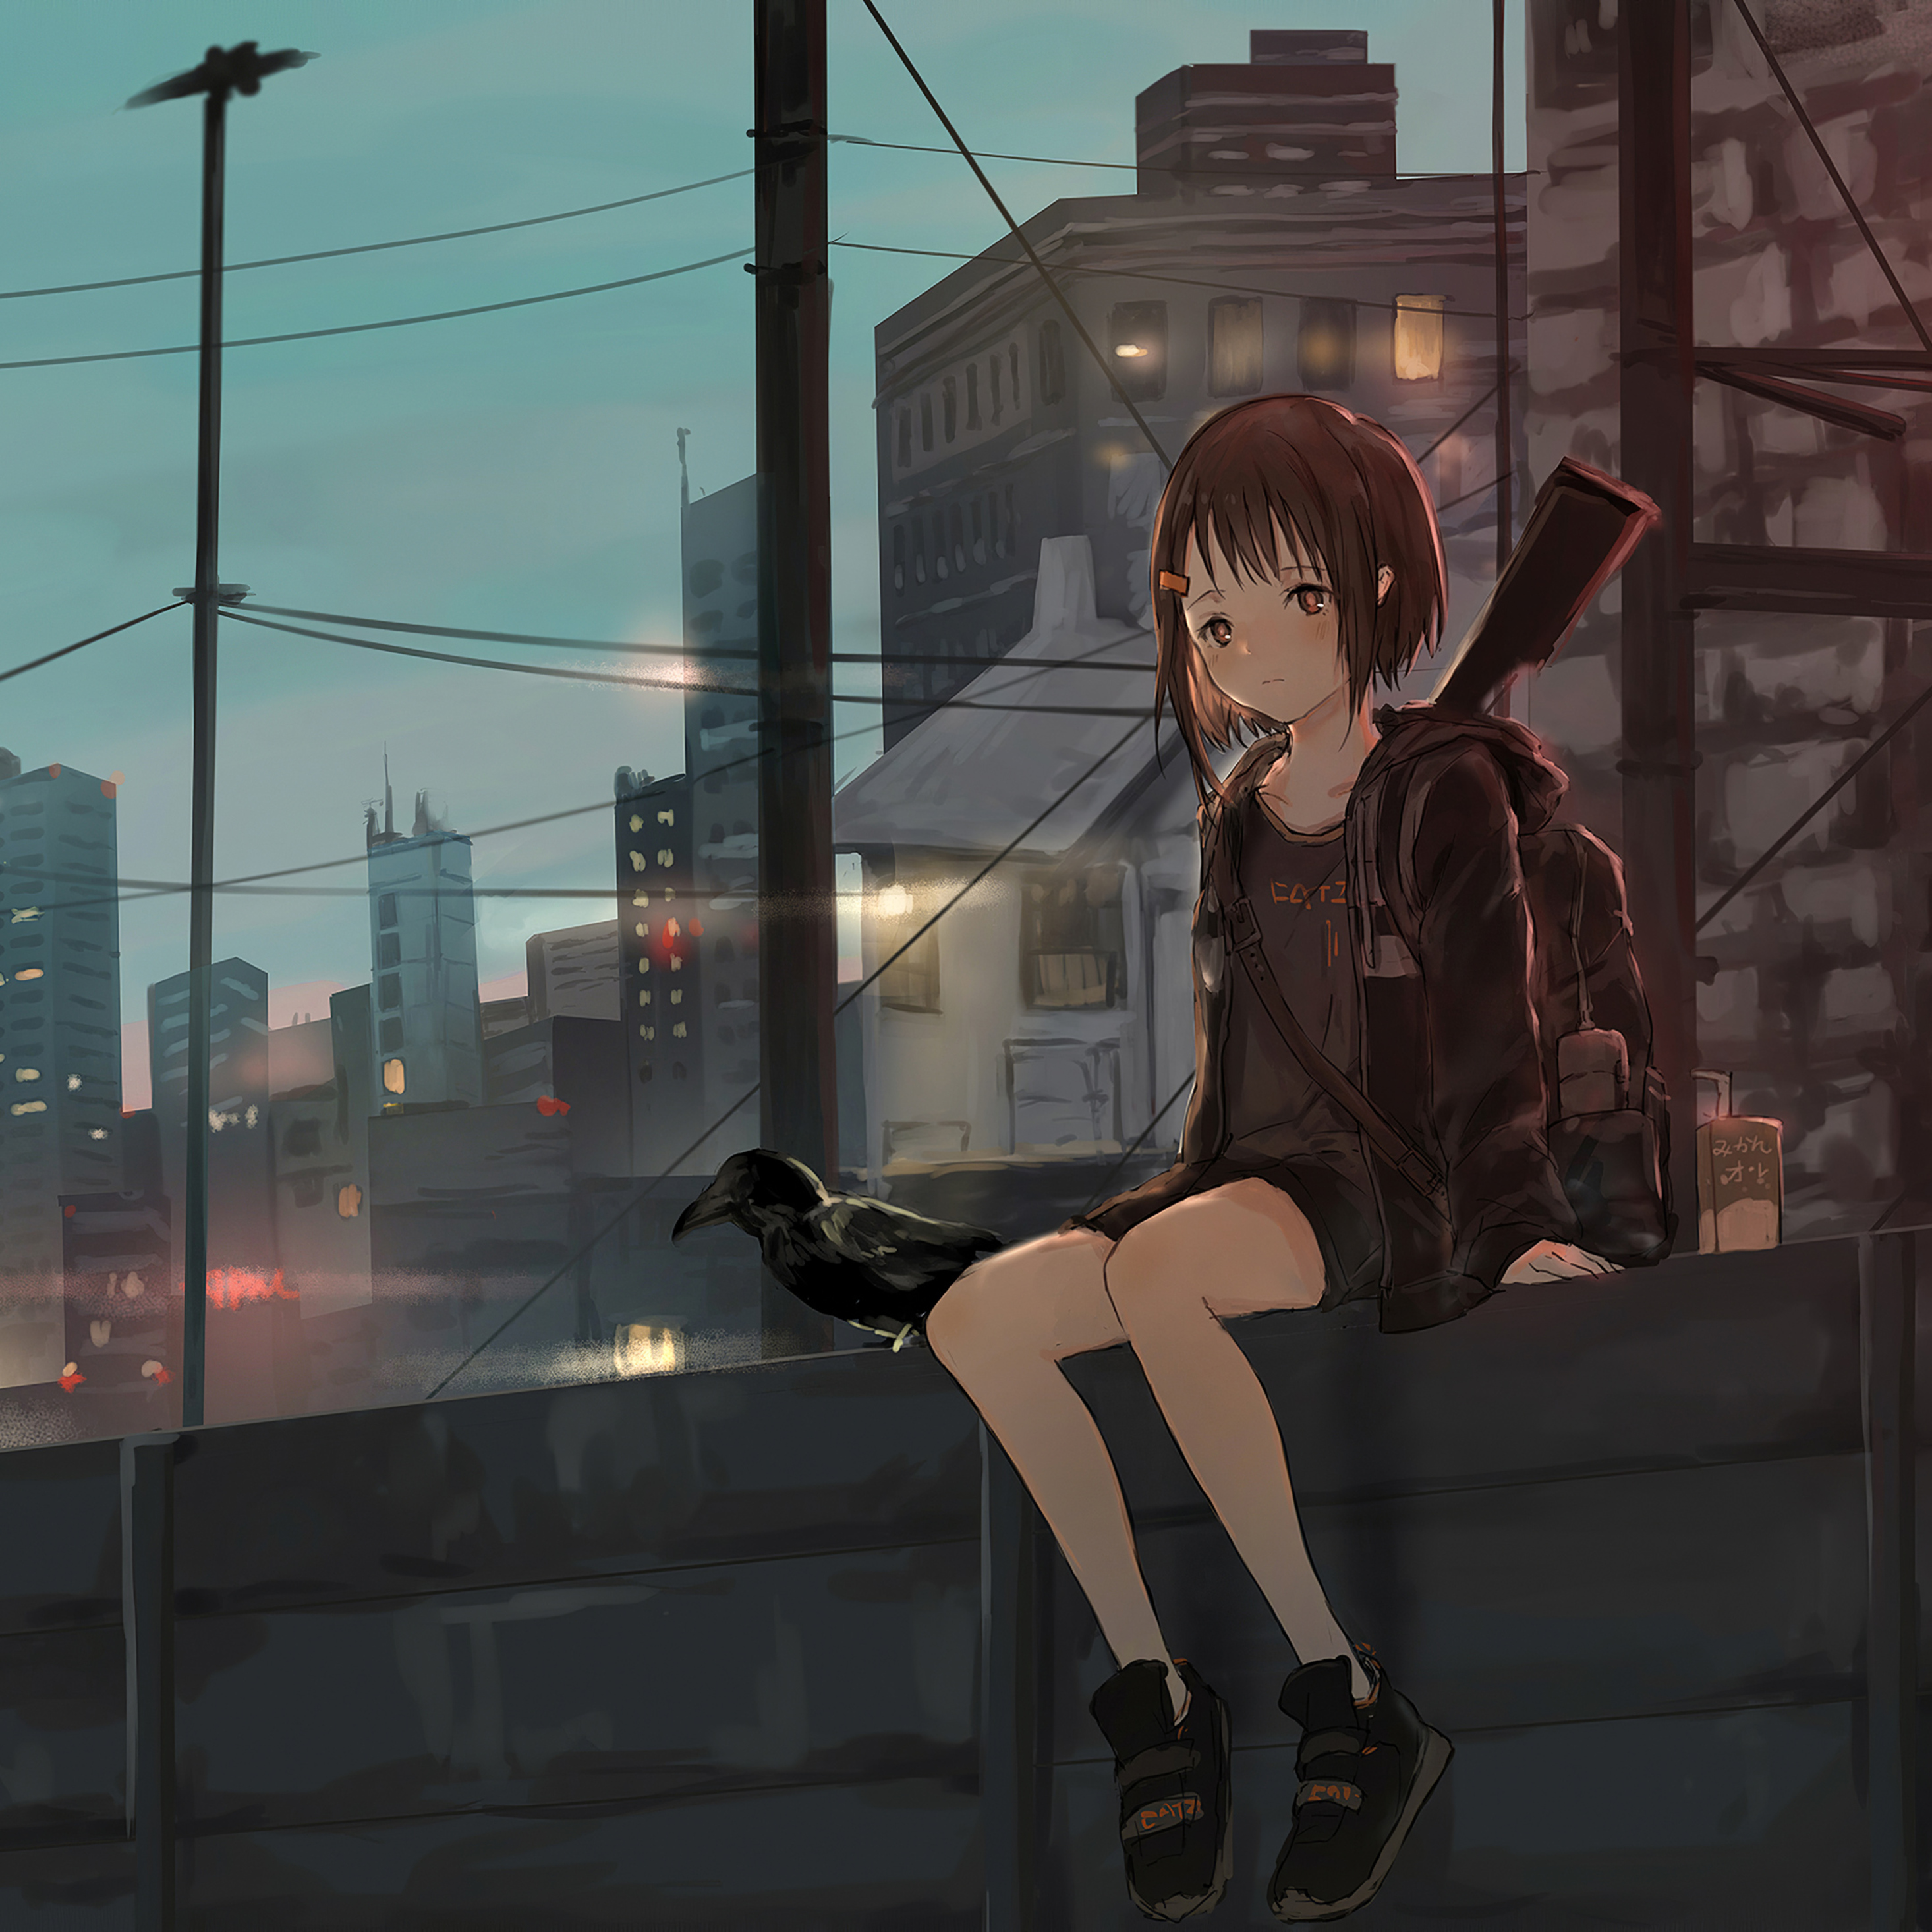 2932x2932 Anime Girl Sitting Alone Roof Sad 4k Ipad Pro Retina Display Hd 4k Wallpapers Images Backgrounds Photos And Pictures